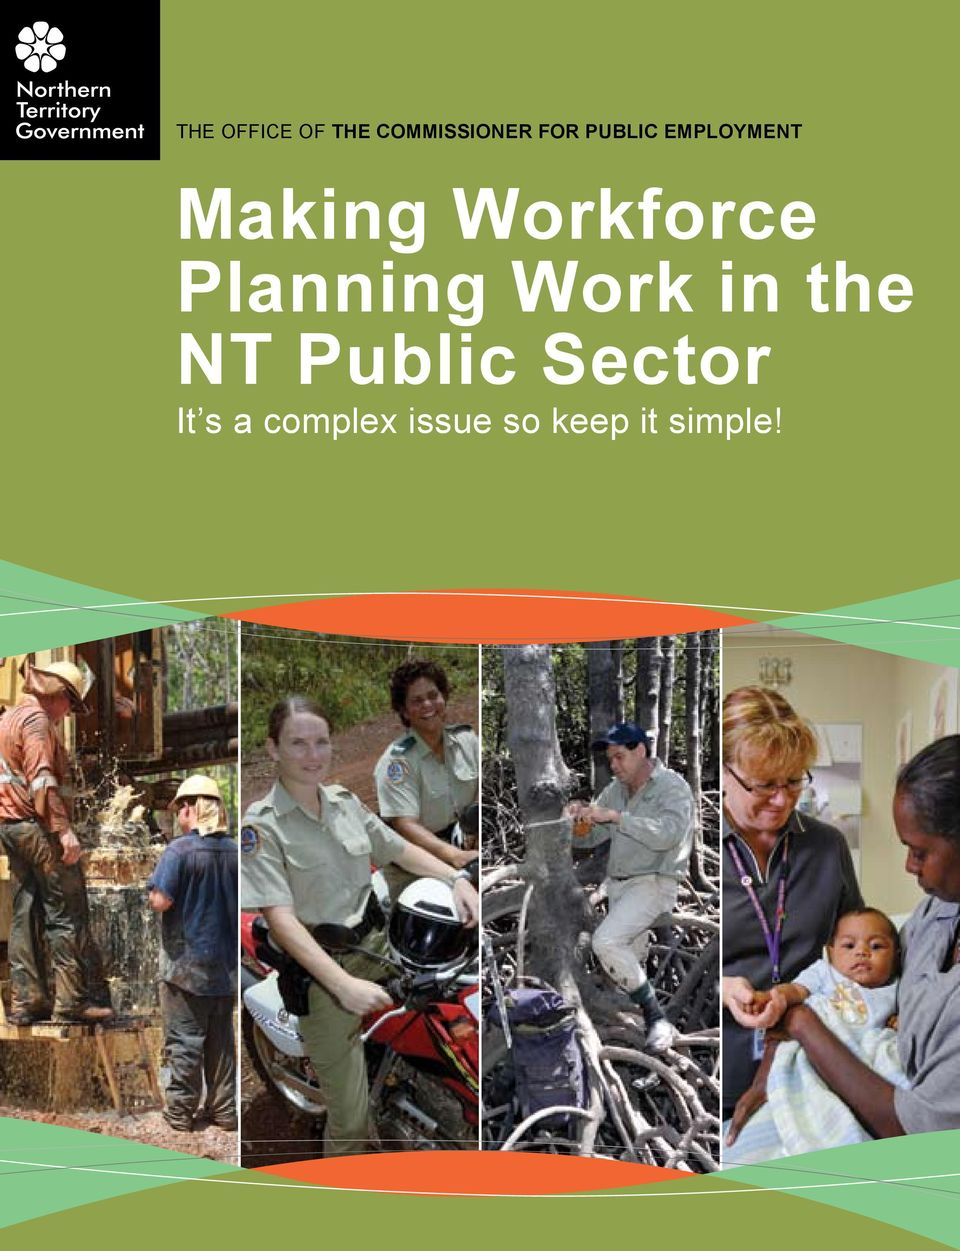 Planning Work in the NT Public